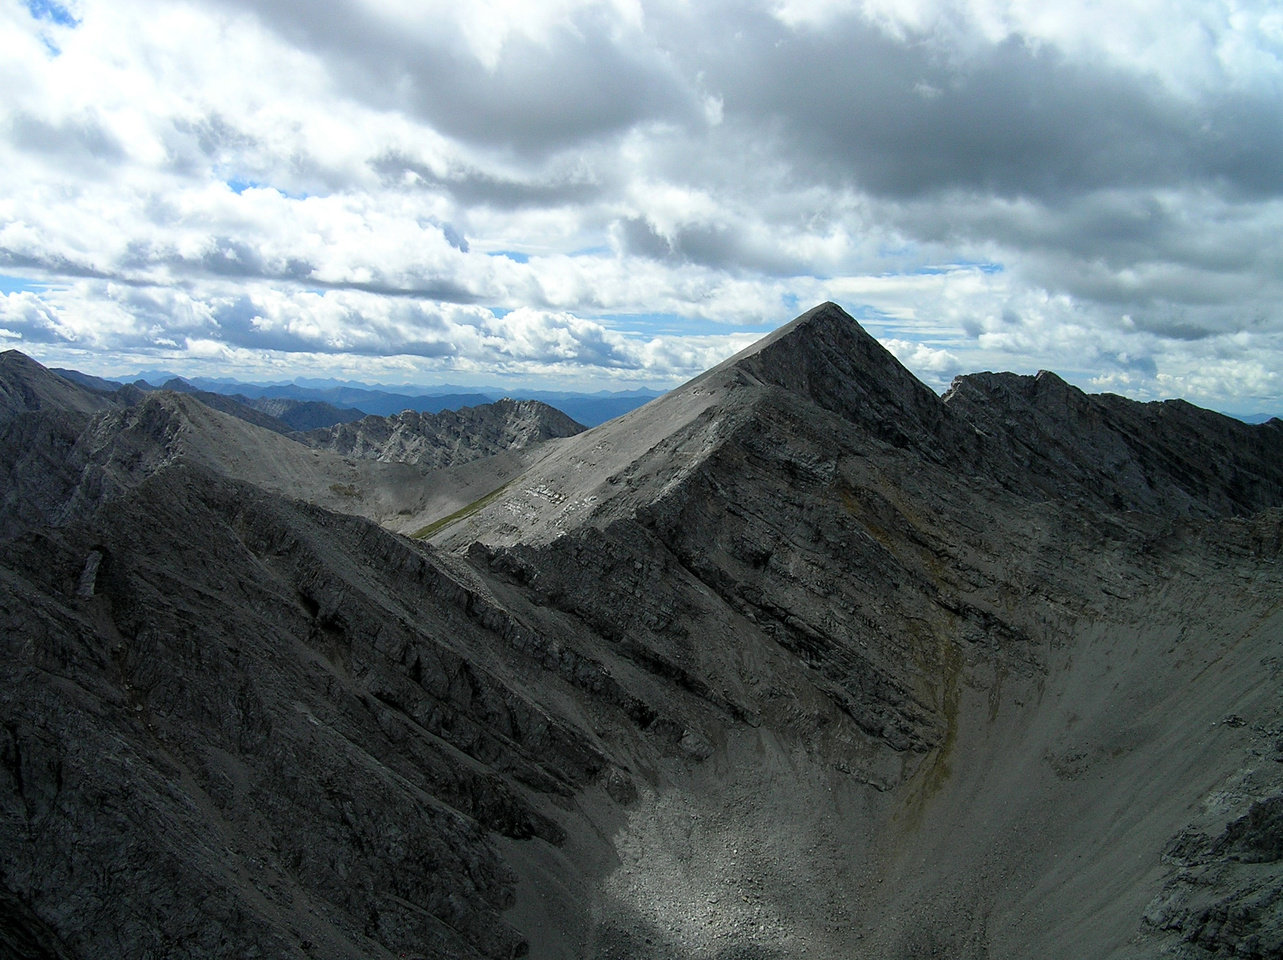 The route from Allison (C) to Window Mountain at left is fairly obvious.